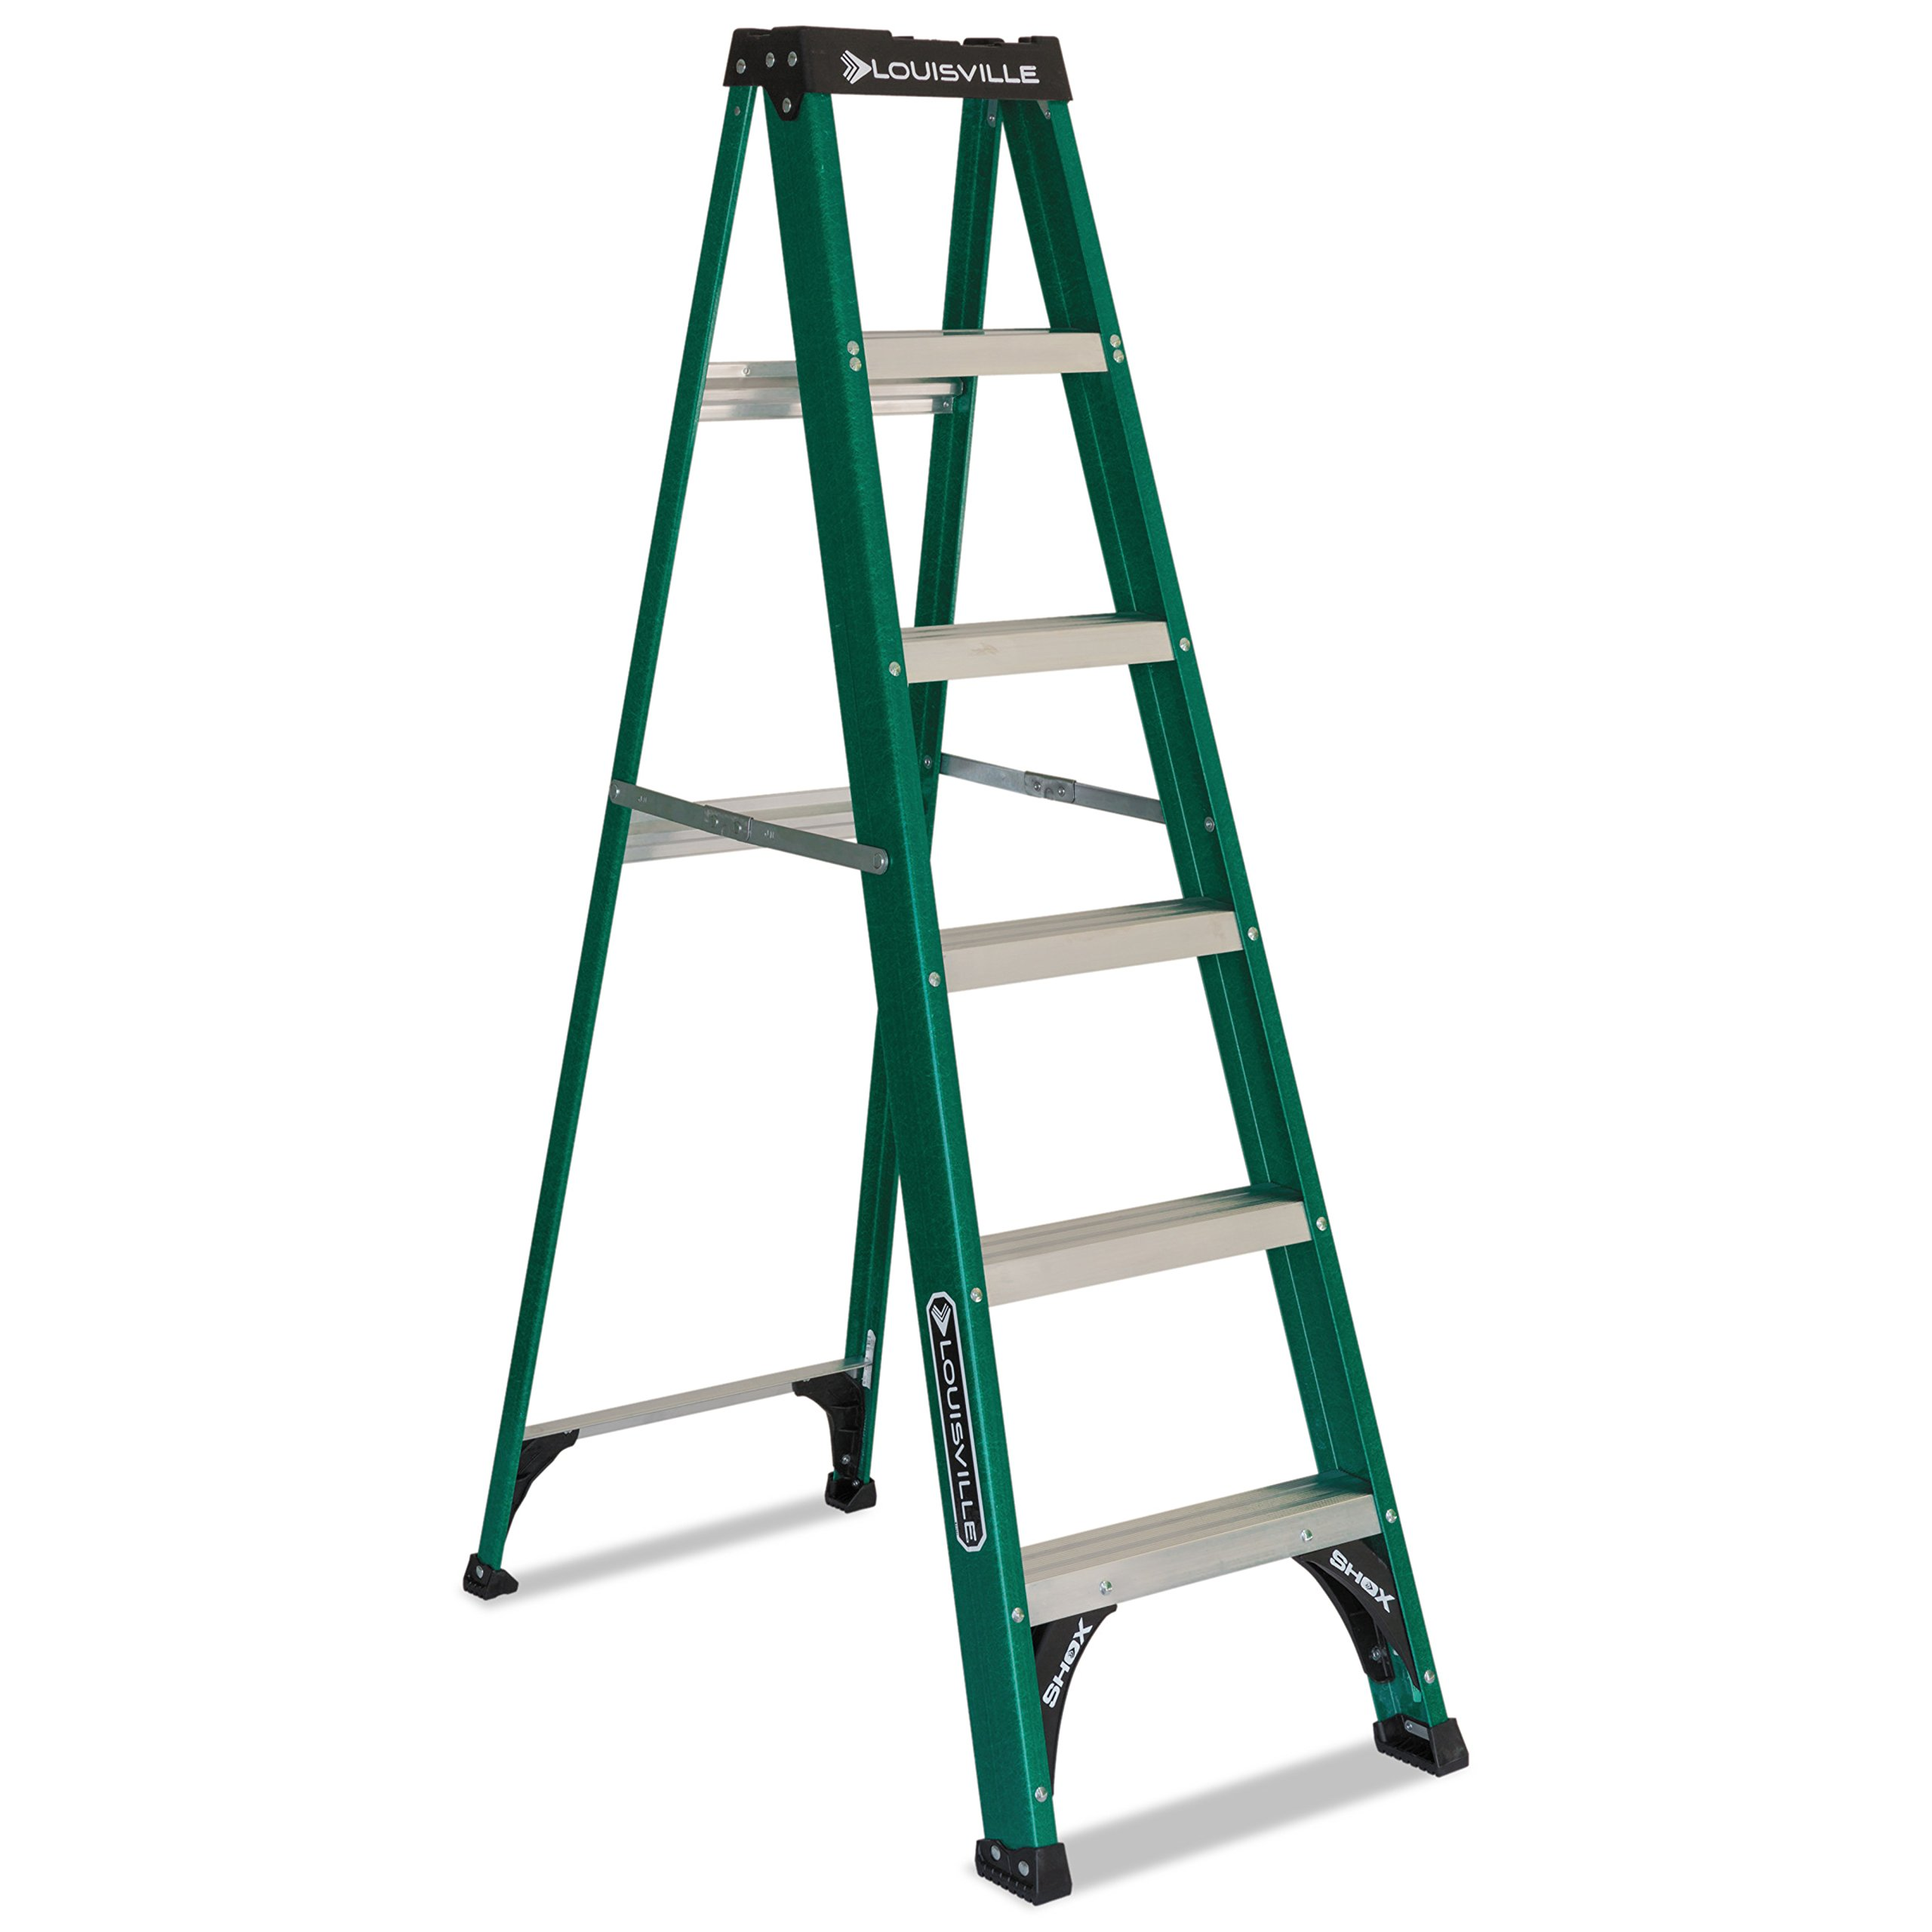 Multi Functional Fiberglass Green Folding Step Ladder with Multiple Tool Slots